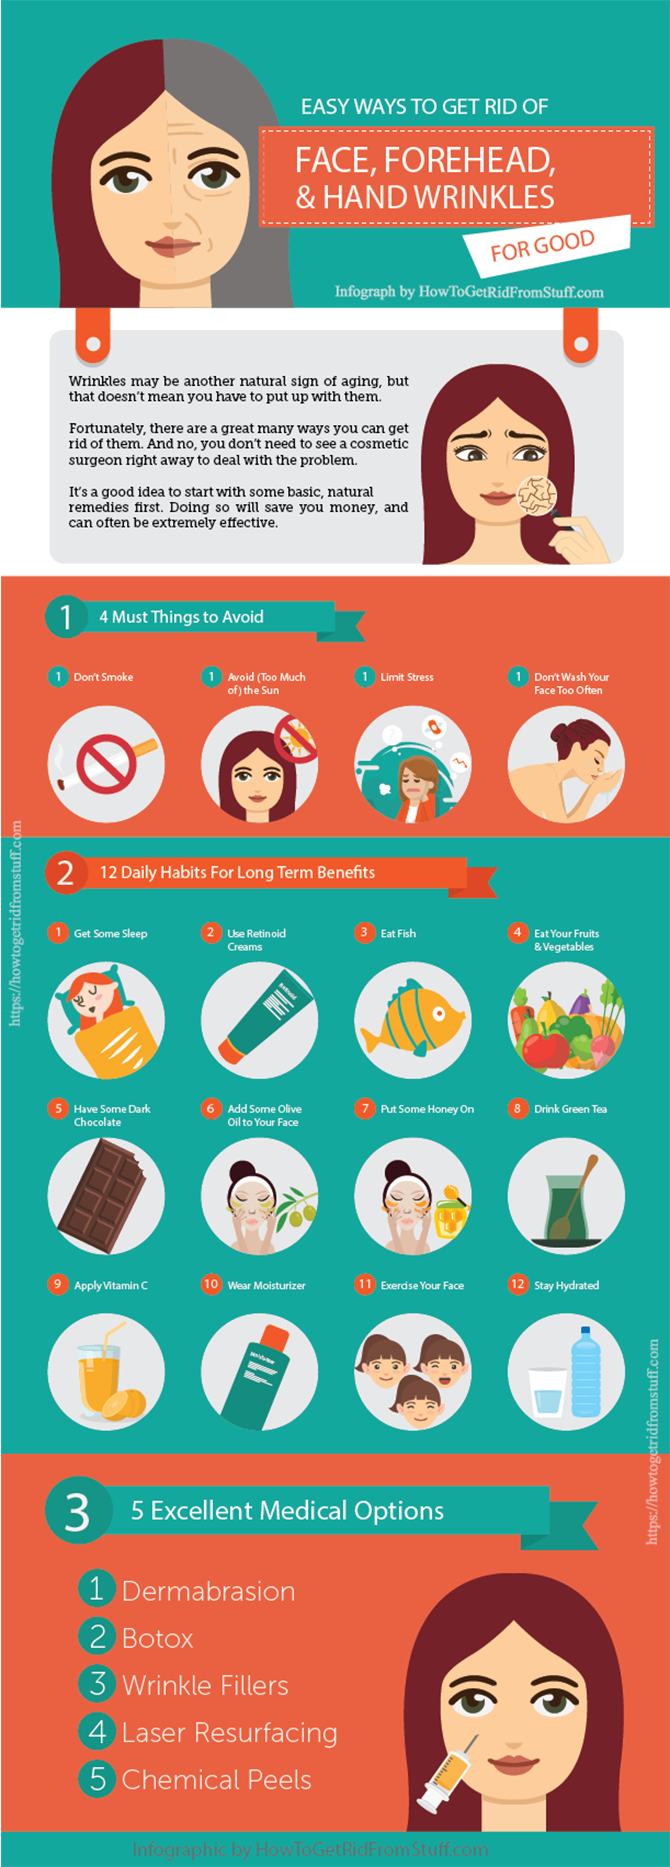 get rid of wrinkles on face forehead hands infographic